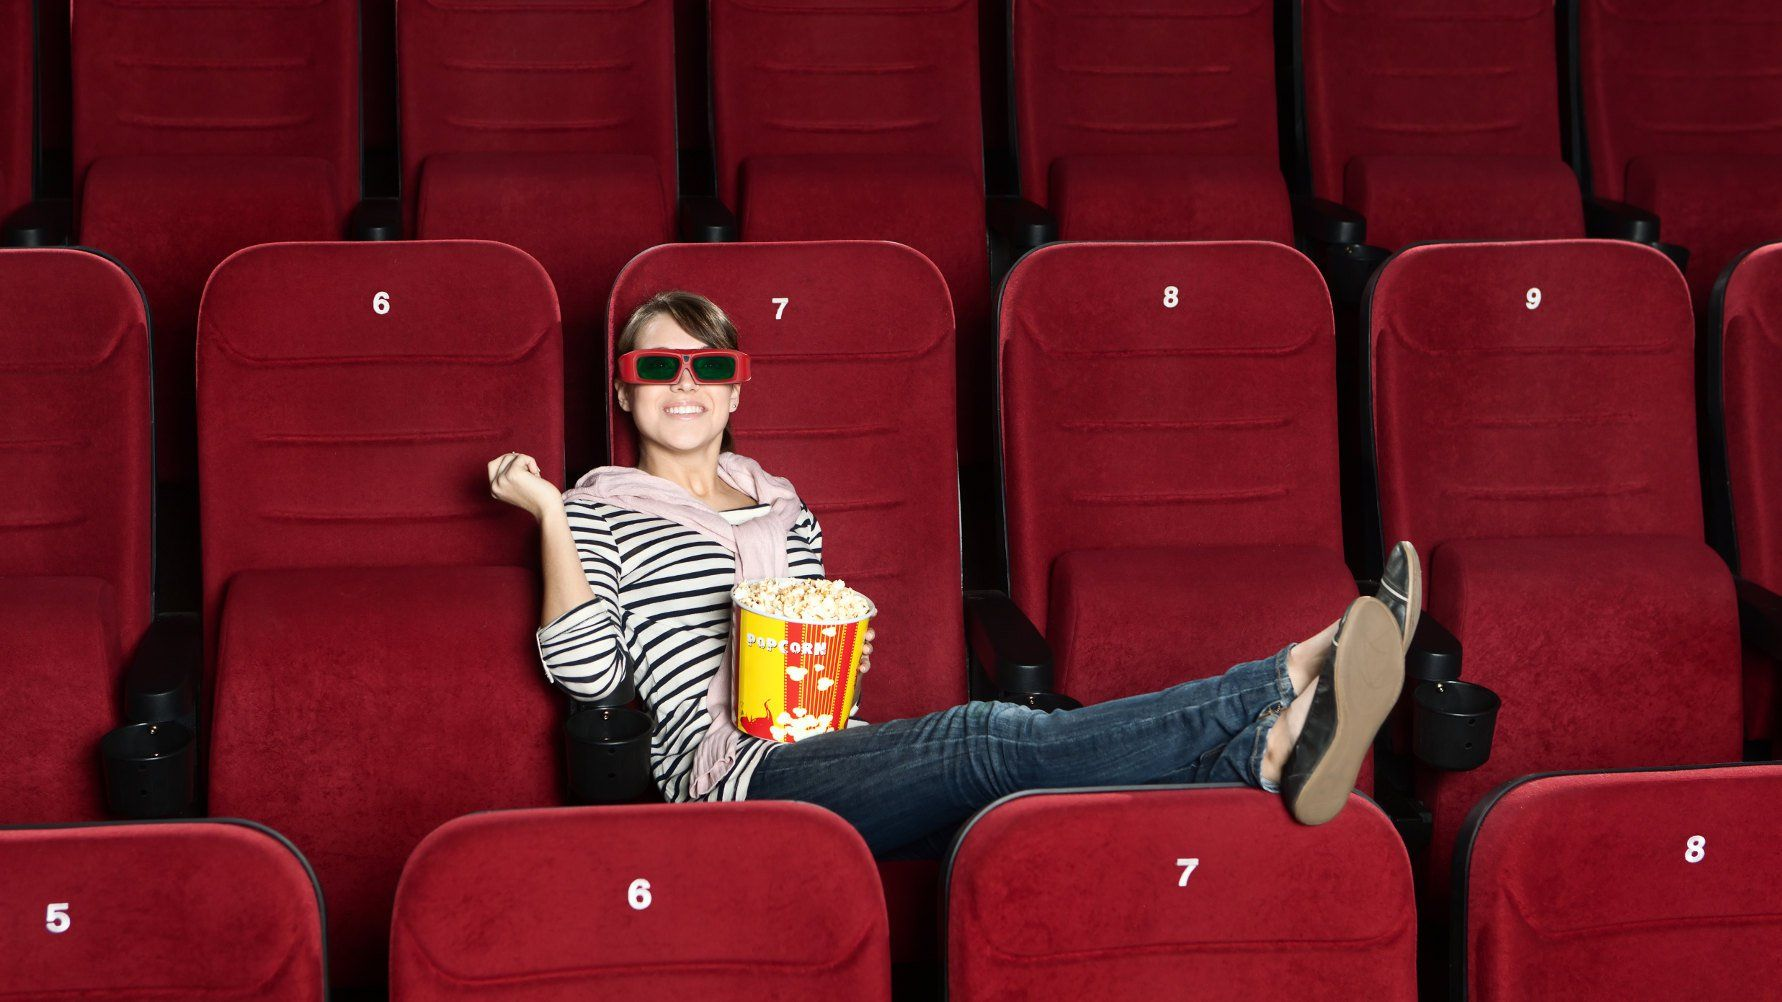 Researchers make a case for why you should go to the movies alone. They say you'll have just as much fun as if you went with a group — don't miss out on life just because you can't find someone to go with you.